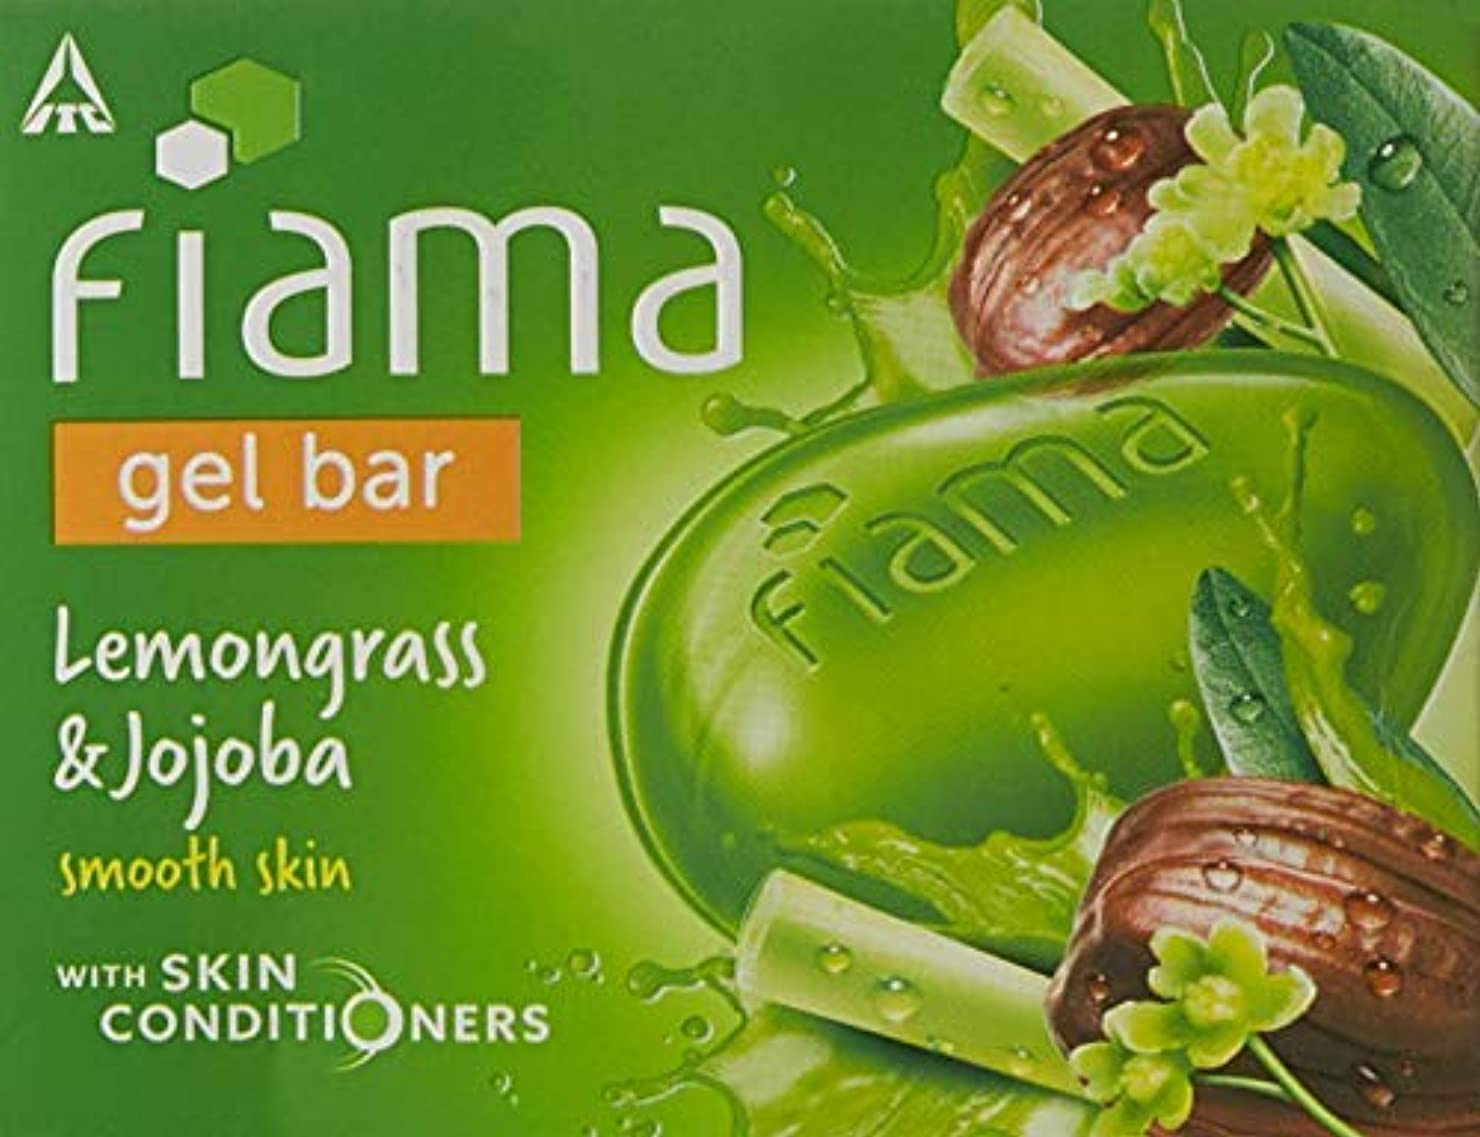 制限カウボーイ心理学Fiama Di Wills Lemongrass & Jojoba Gel Bar, 125g (Pack Of 3)